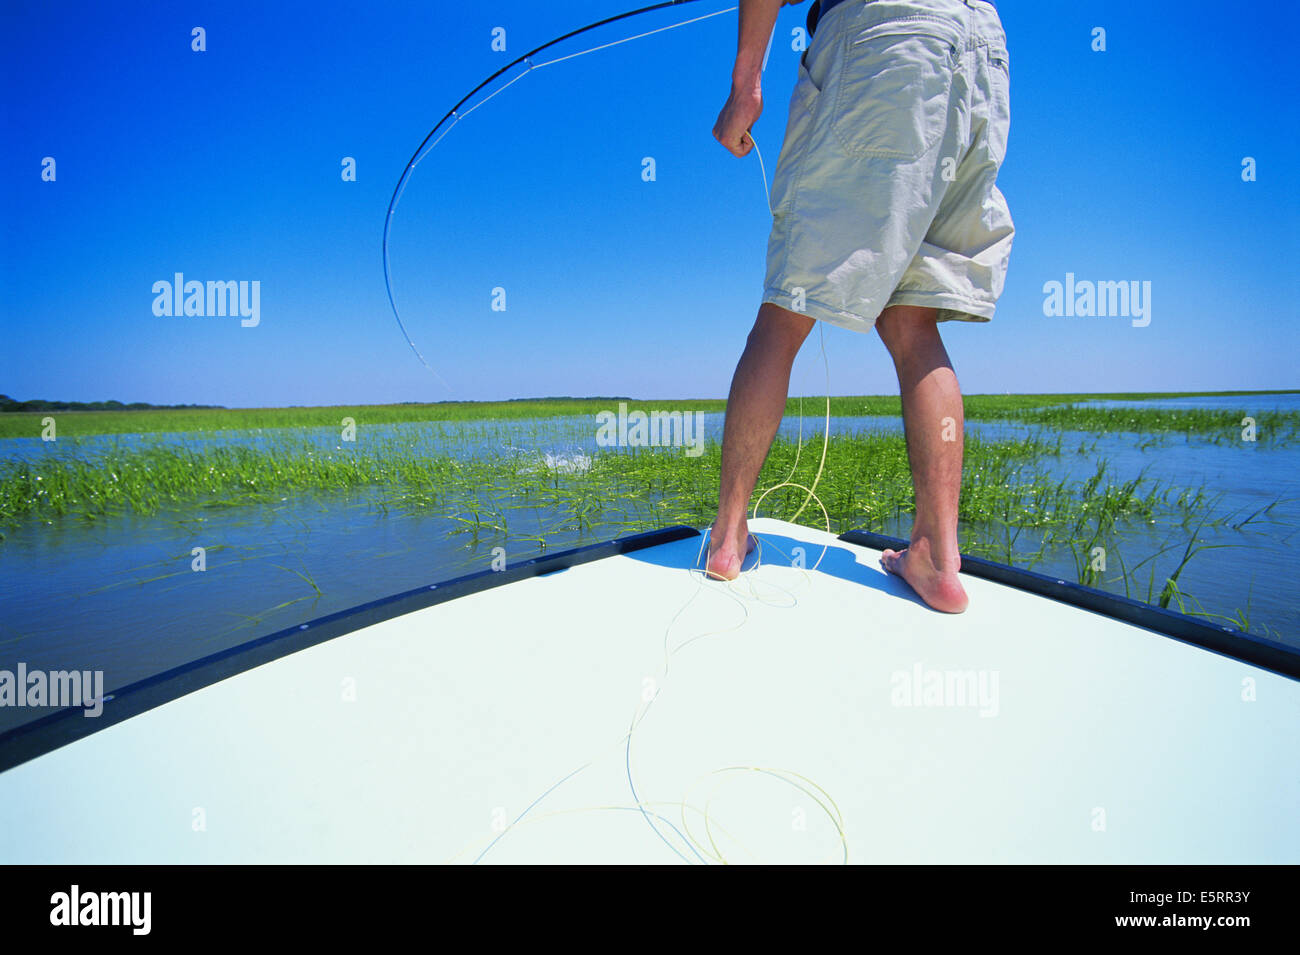 Fisherman reeling in catch, low section - Stock Image